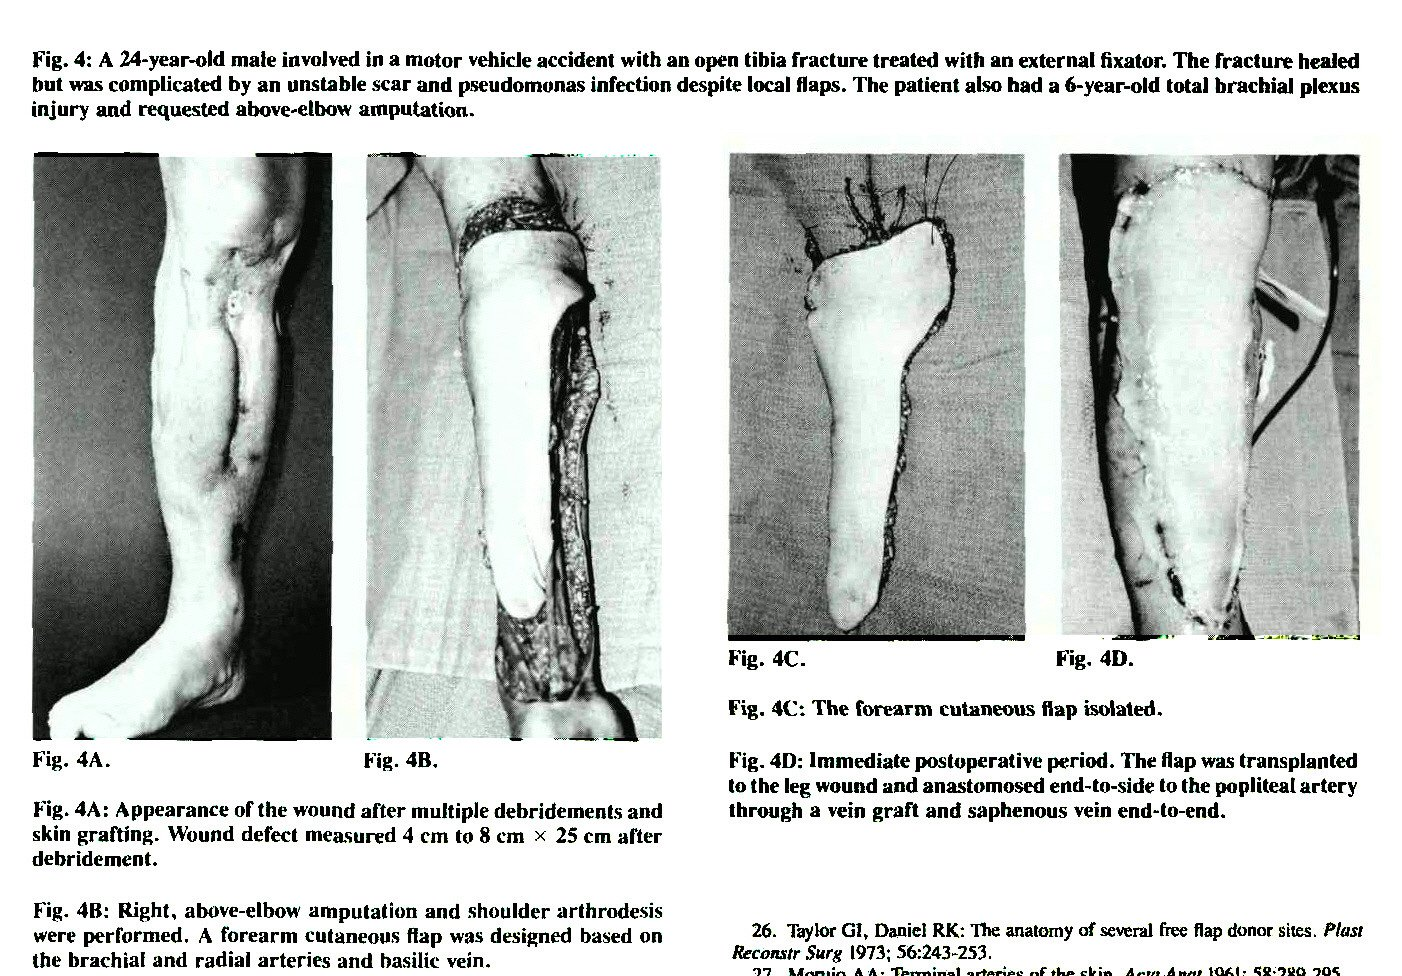 Free Vascularized Flaps for Lower Extremity Reconstruction